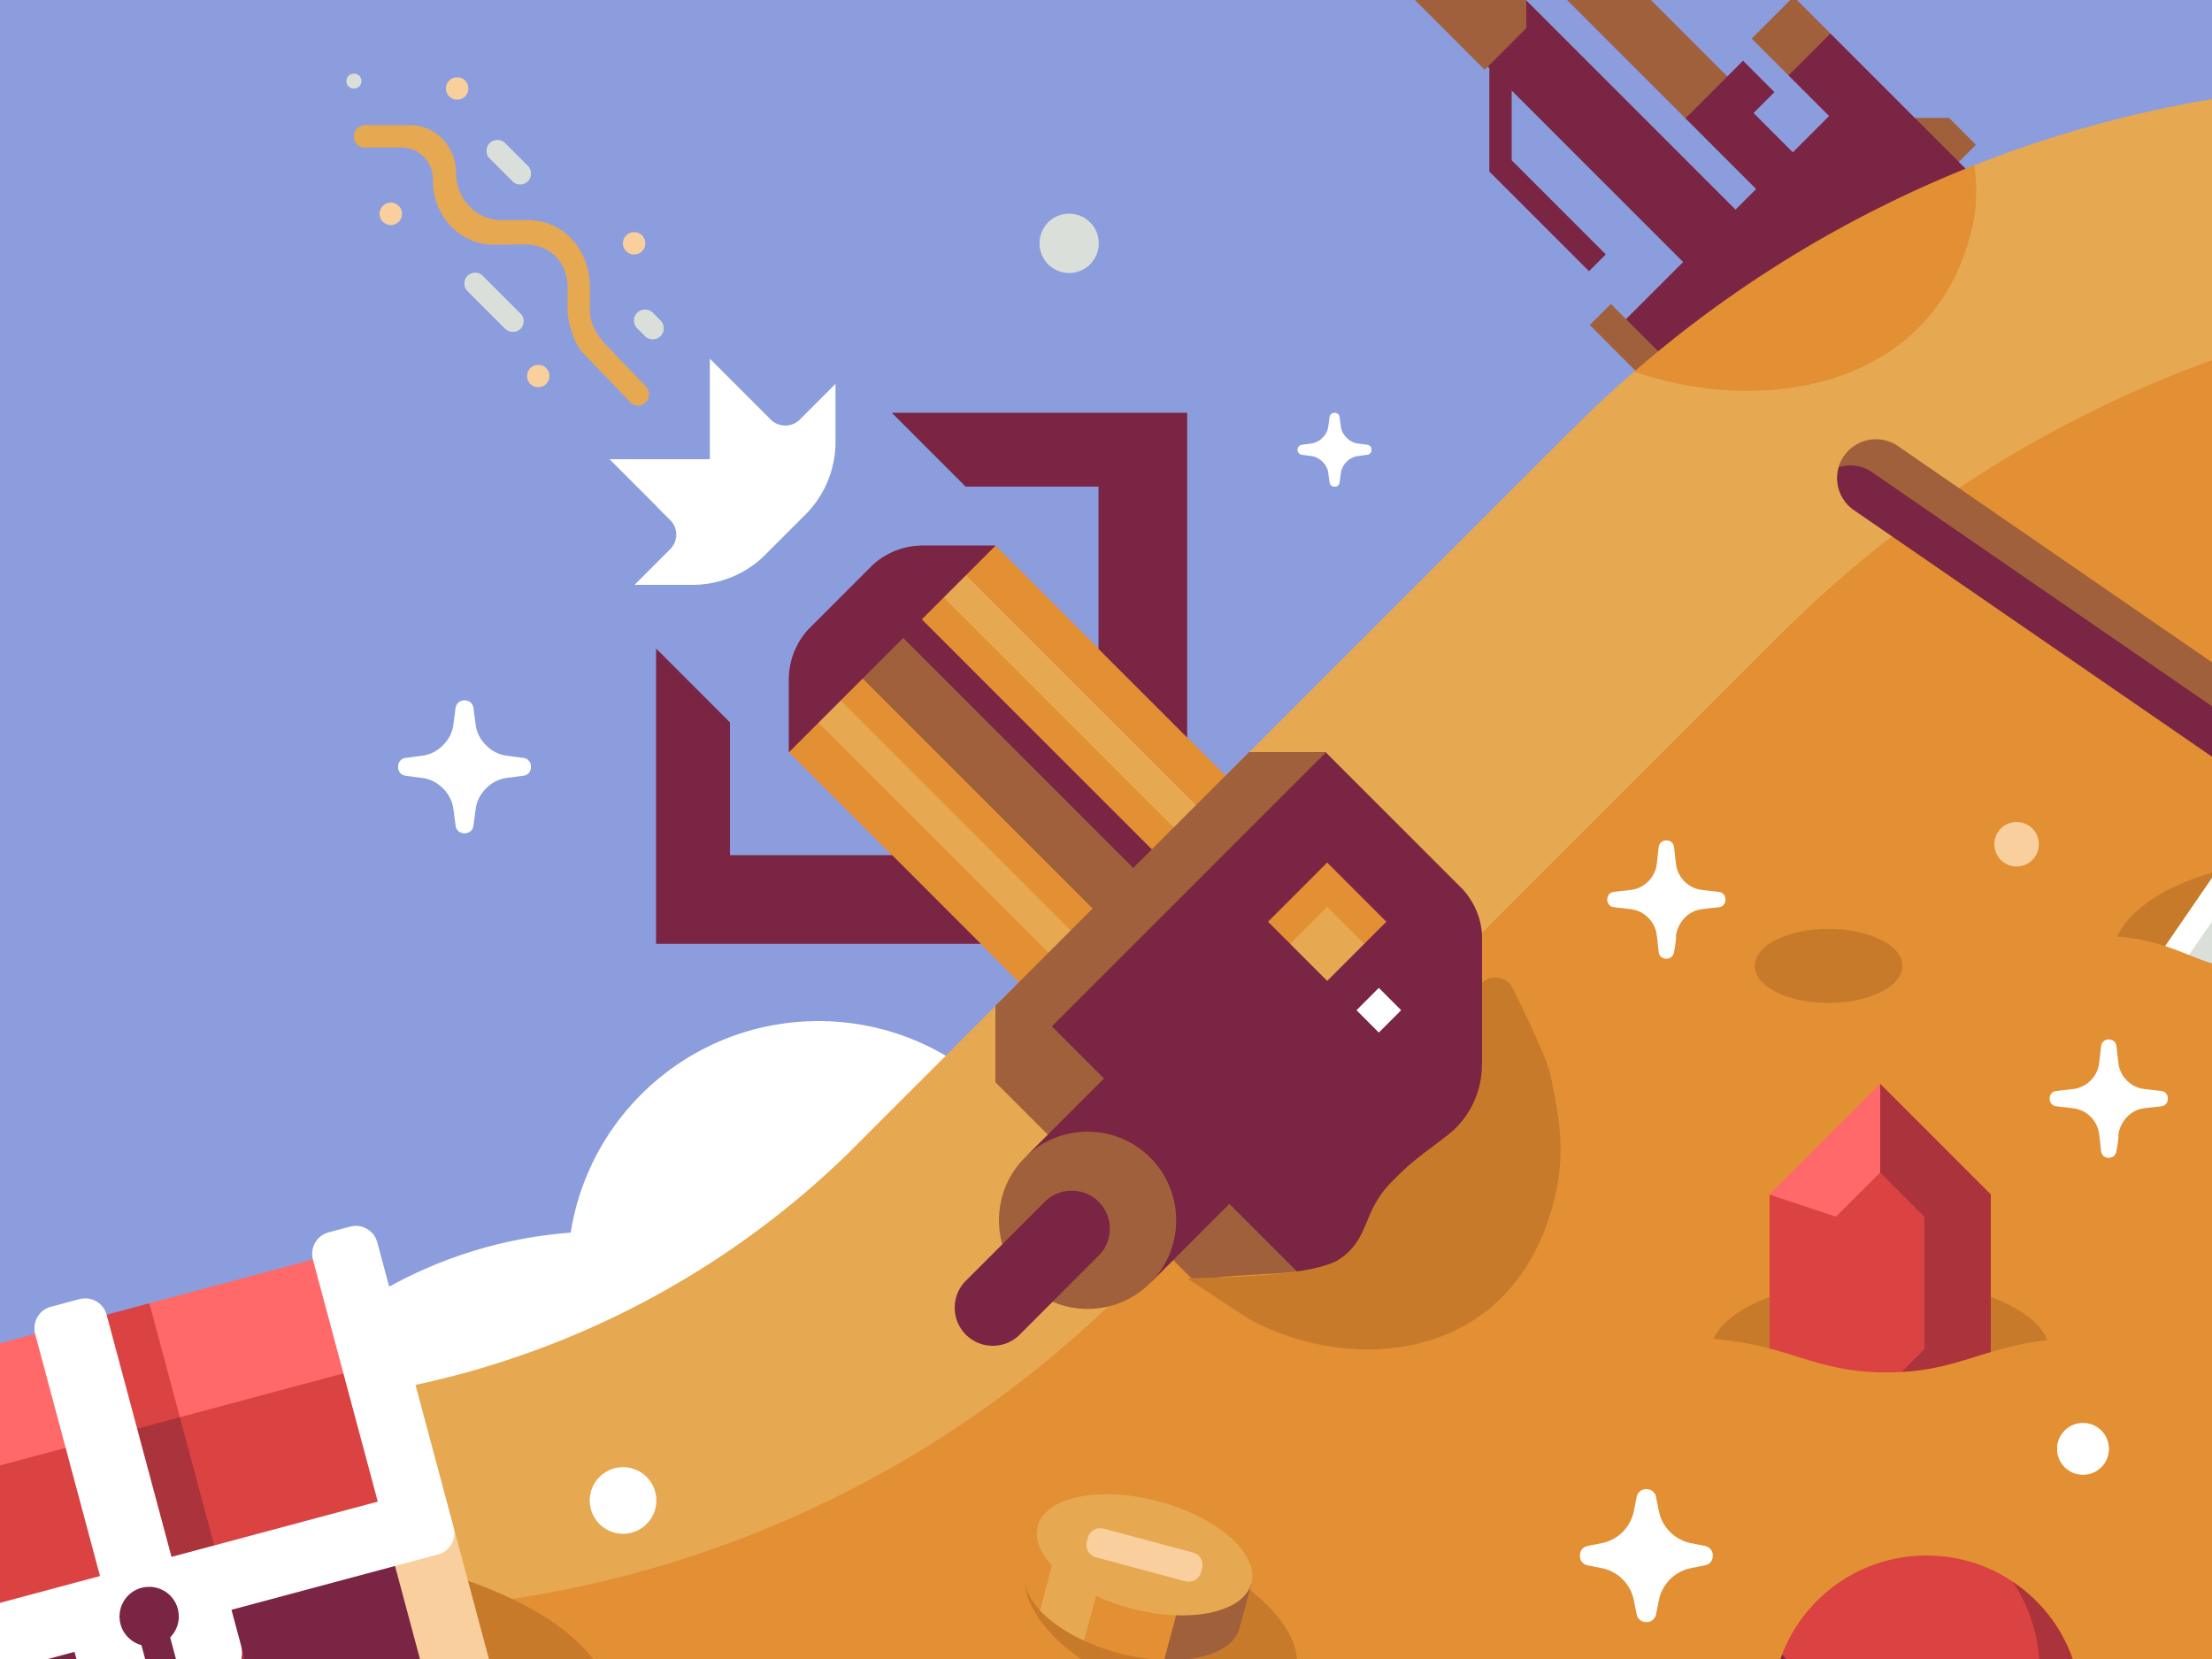 Mountains of Loot Gravity Gun, Discord Mural illustrations by Matt Anderson and Canopy Design and Illustration